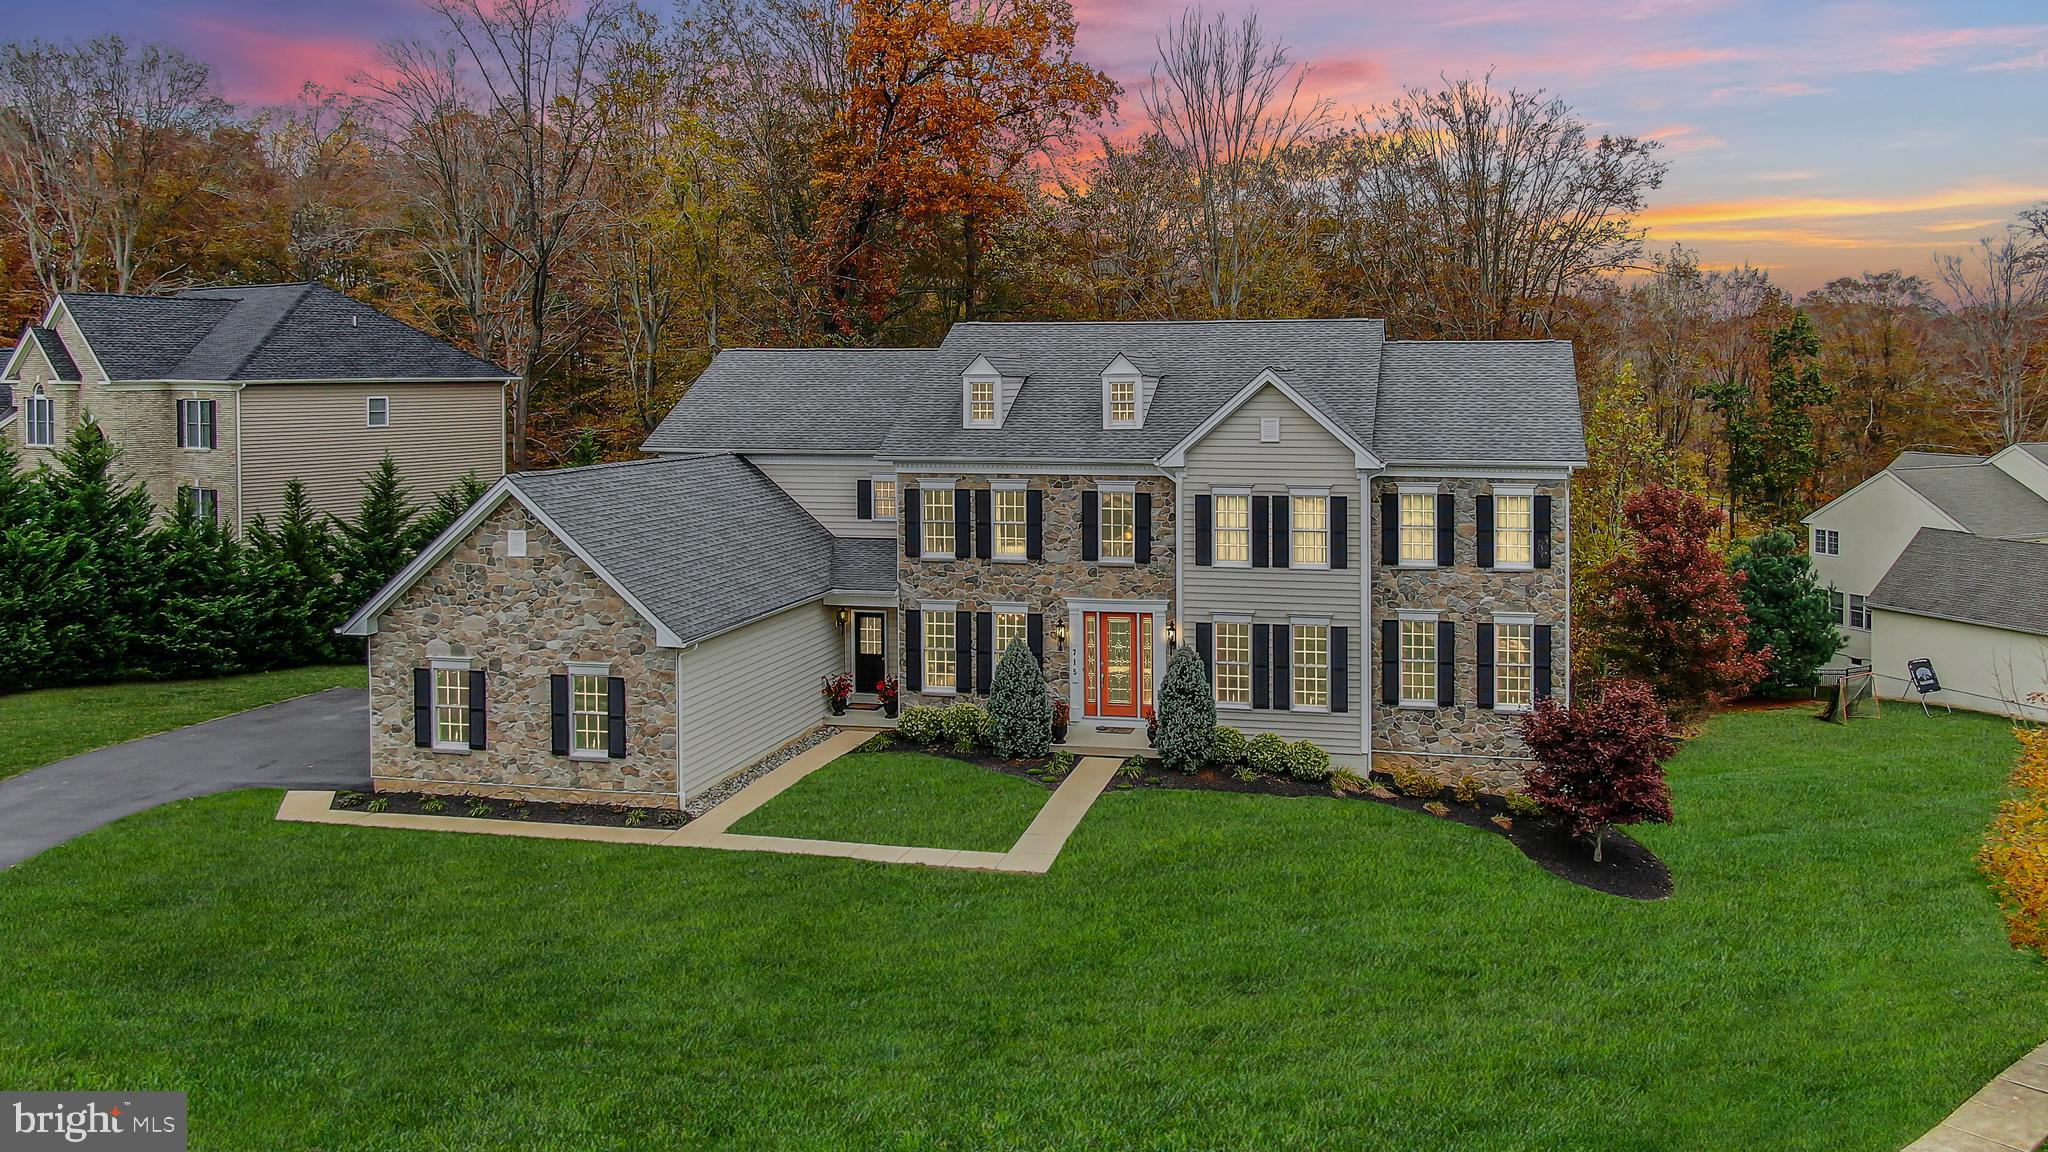 715 CLEARVIEW DRIVE, BEL AIR, MD 21015